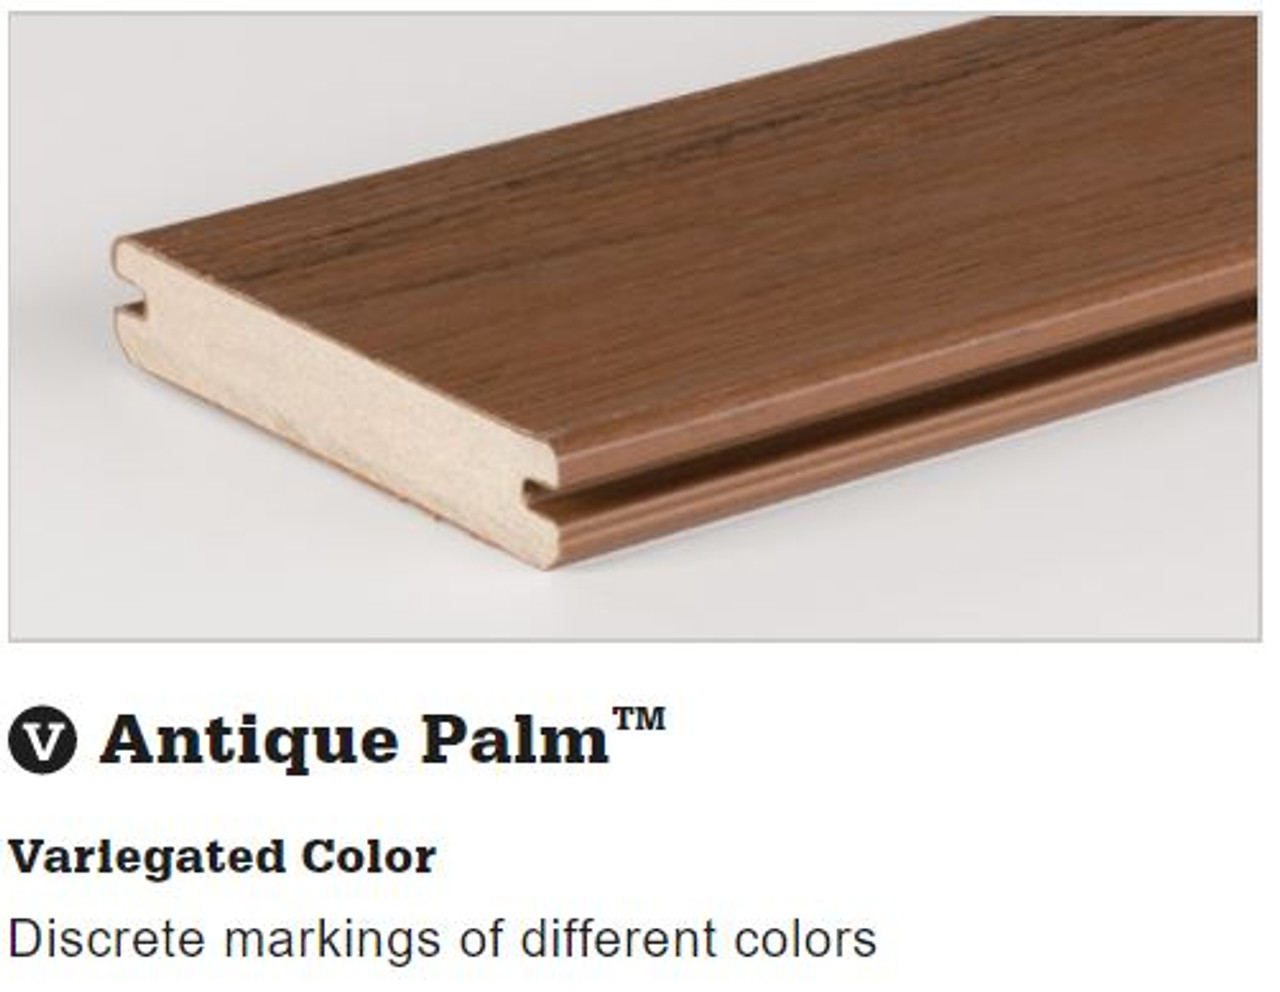 TimberTech Tropical Deck Board in Antique Palm